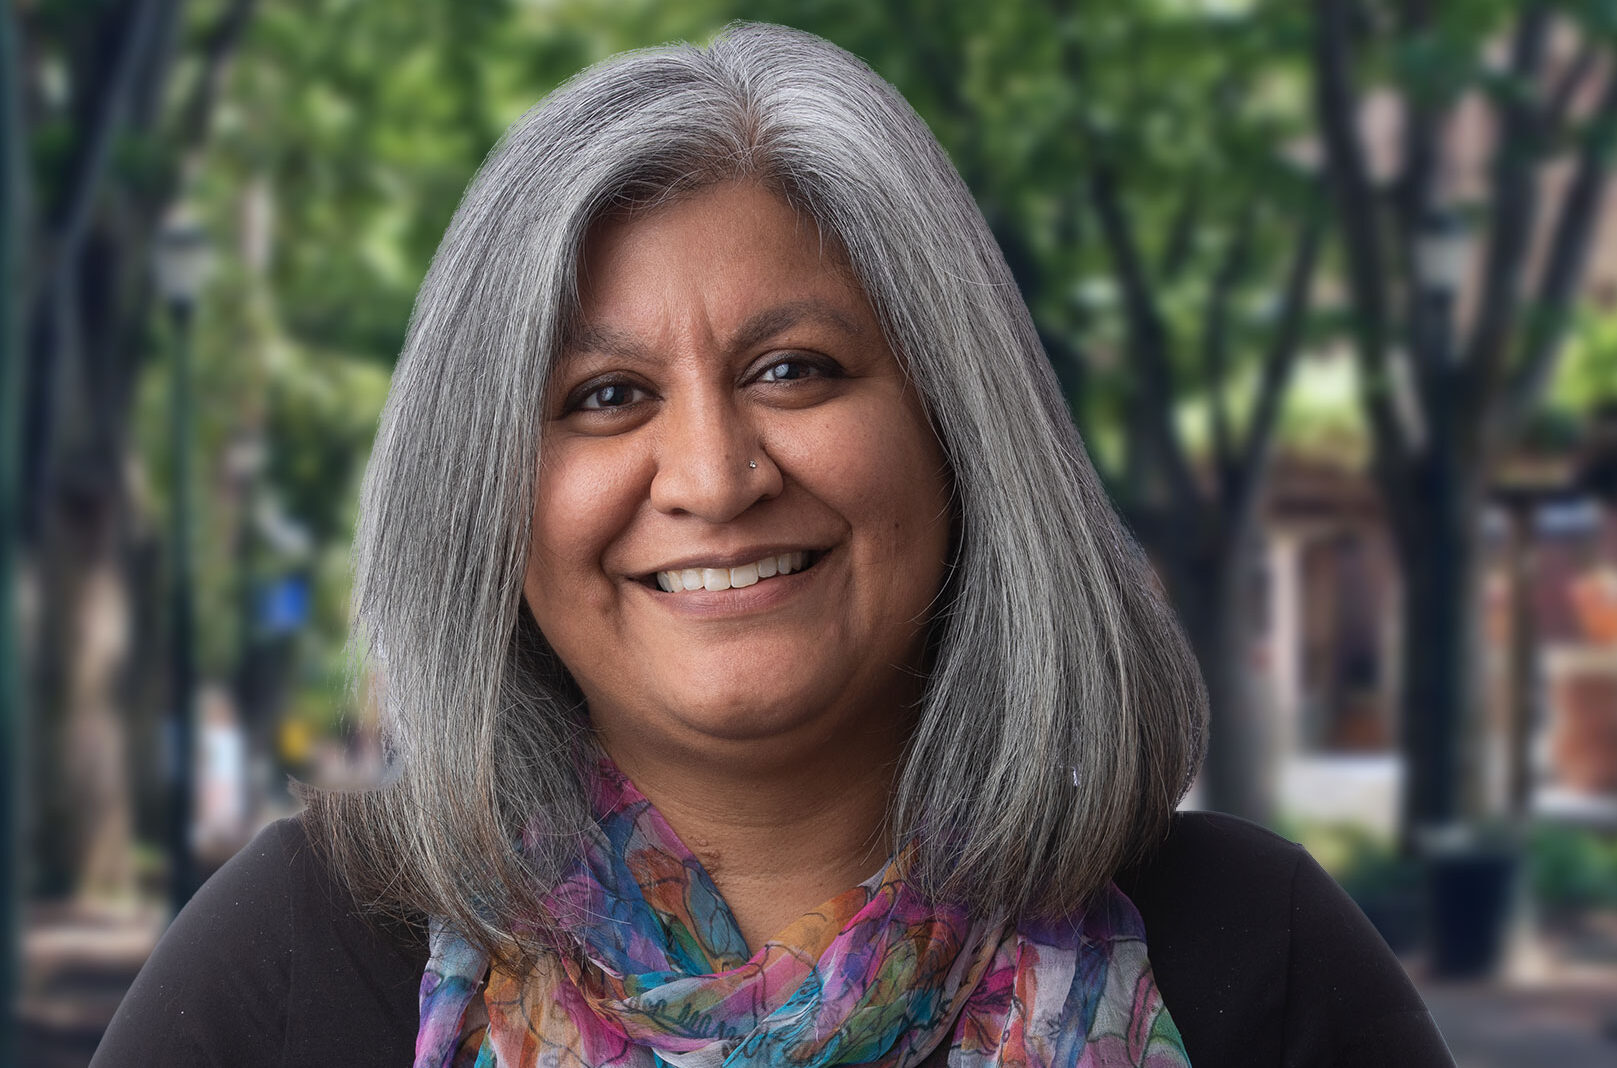 Mamta Accapadi standing in front of trees and buildings on Penn's campus